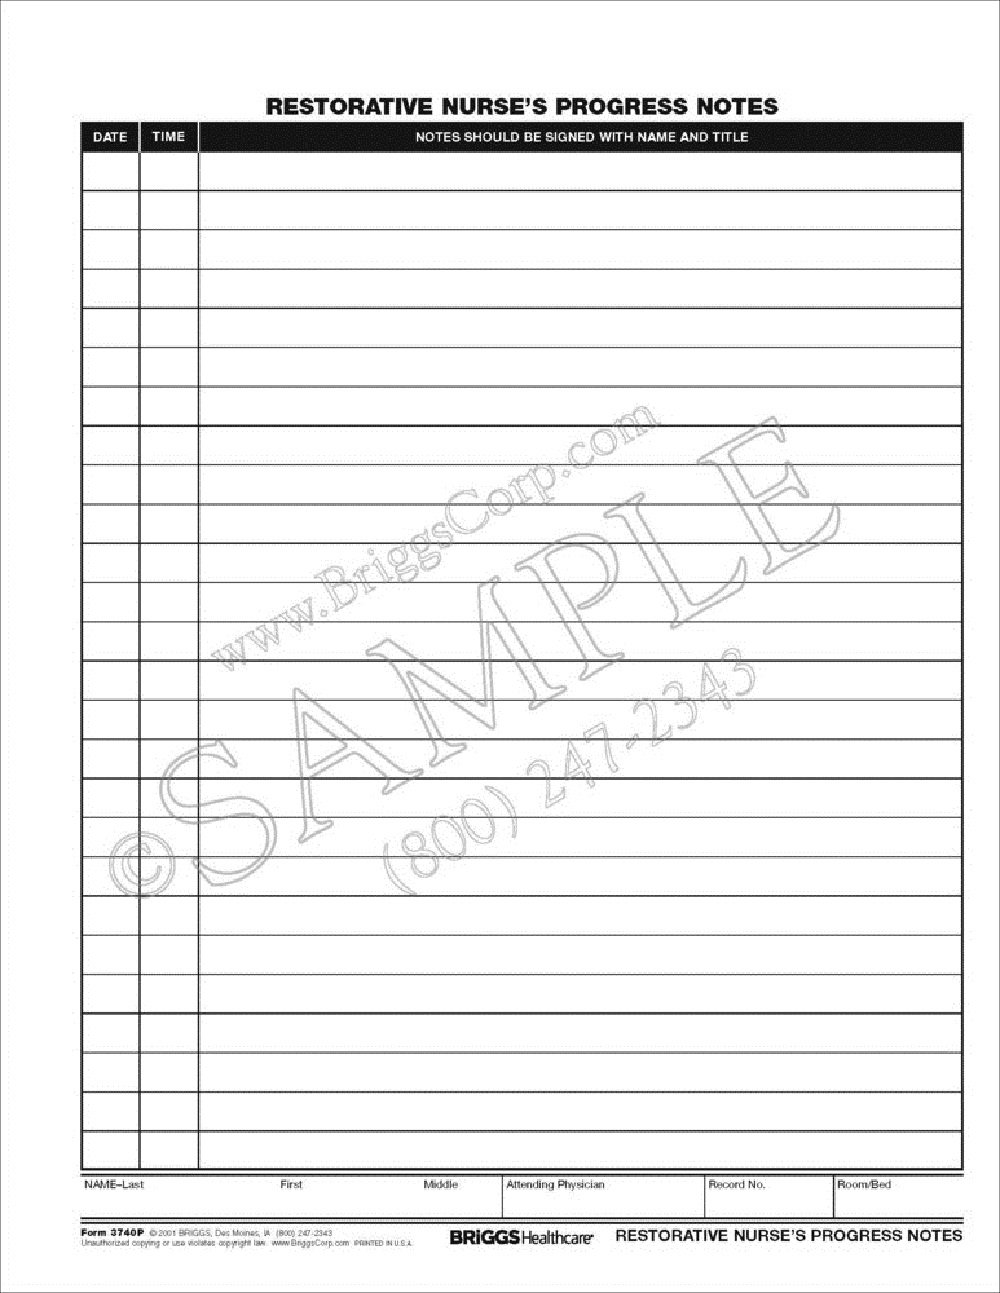 Briggs Healthcare Restorative Nurses Progress Notes Form - 100 Per Pad